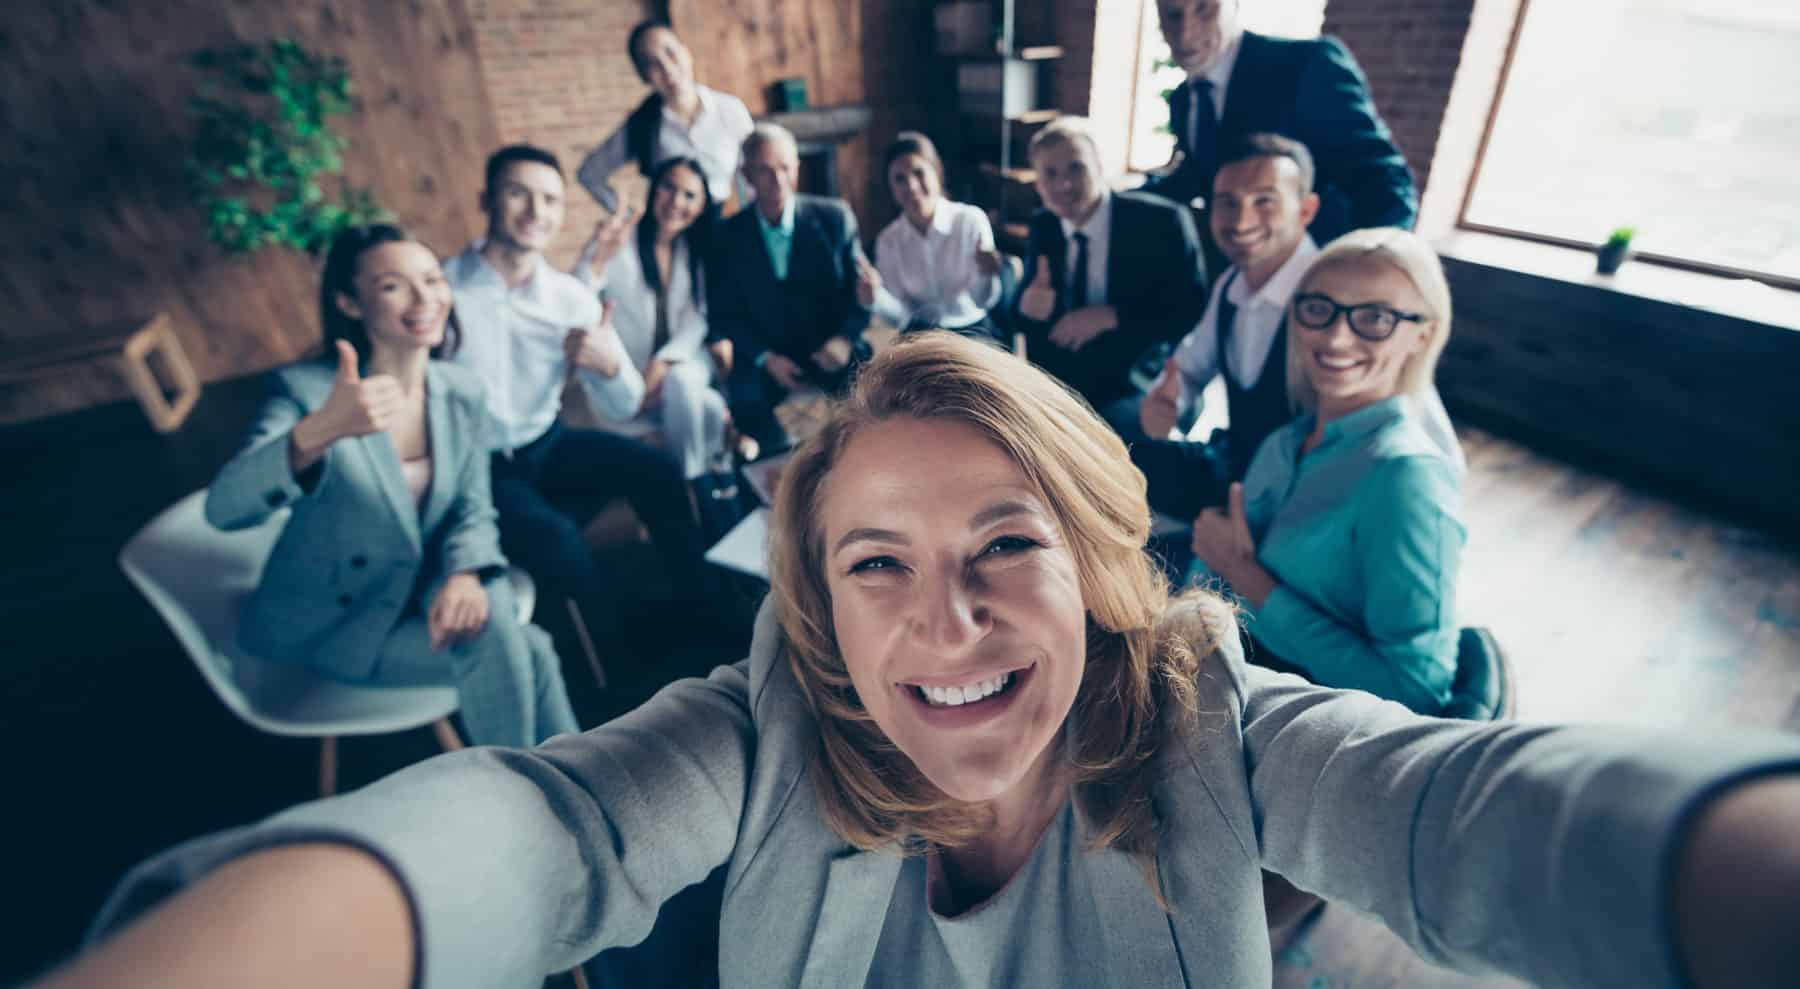 4 Tips to Find the Right Organizational Culture for You